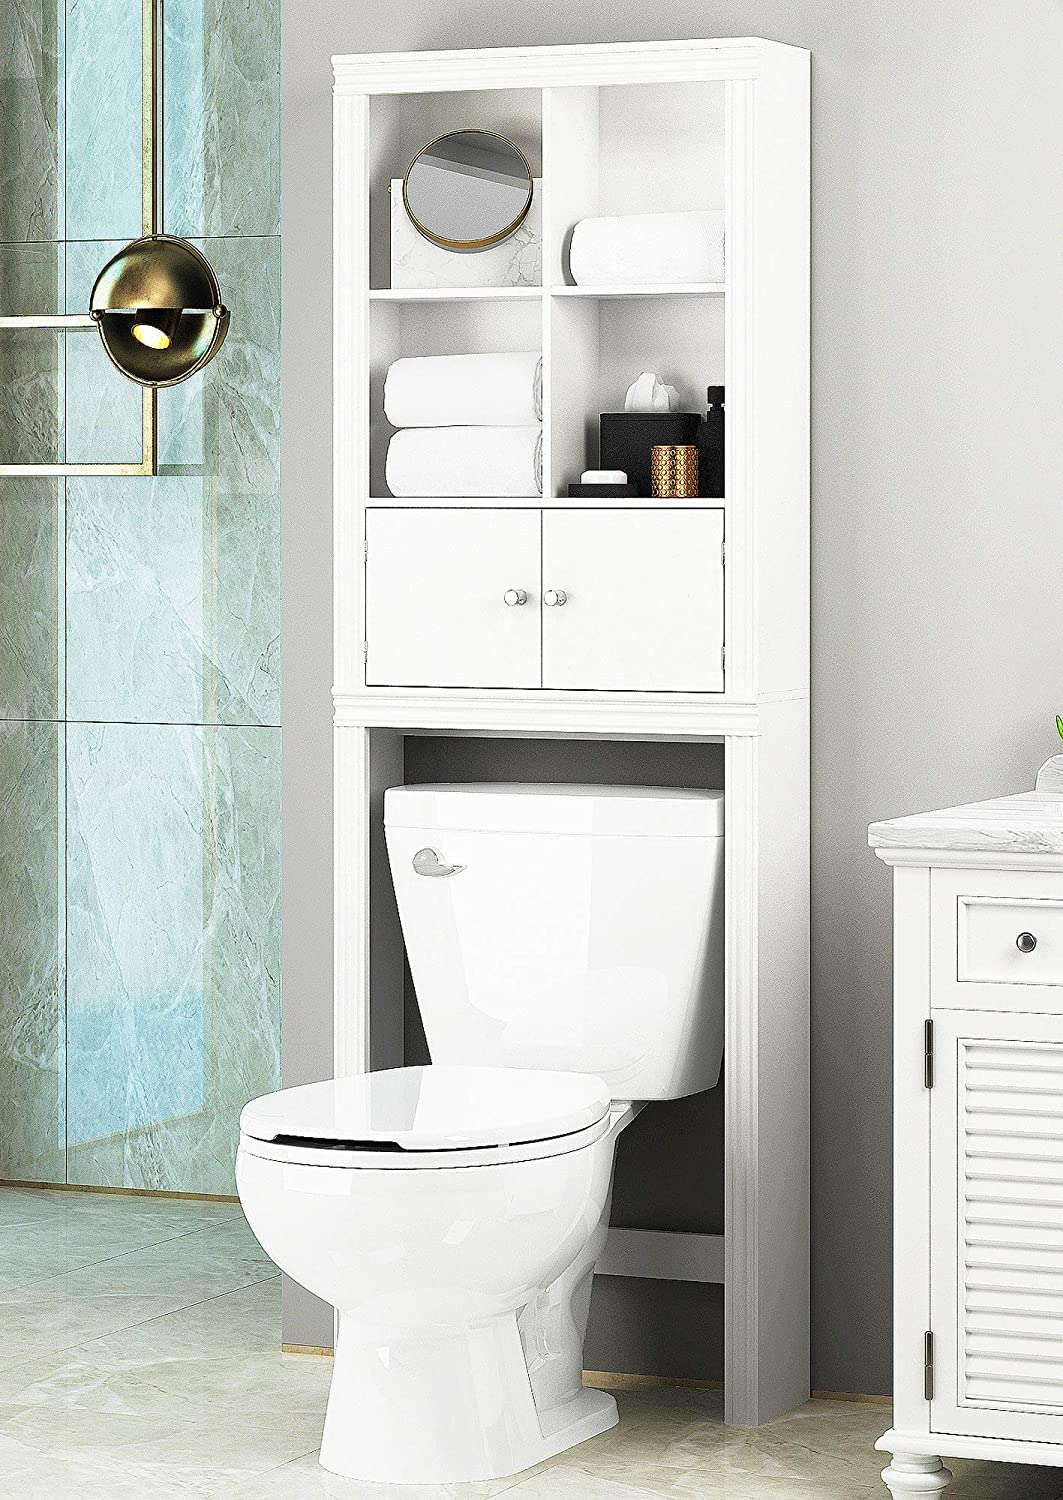 Spirich Home Bathroom Shelf Over Or specialty shop Boston Mall Toilet The Cabinet